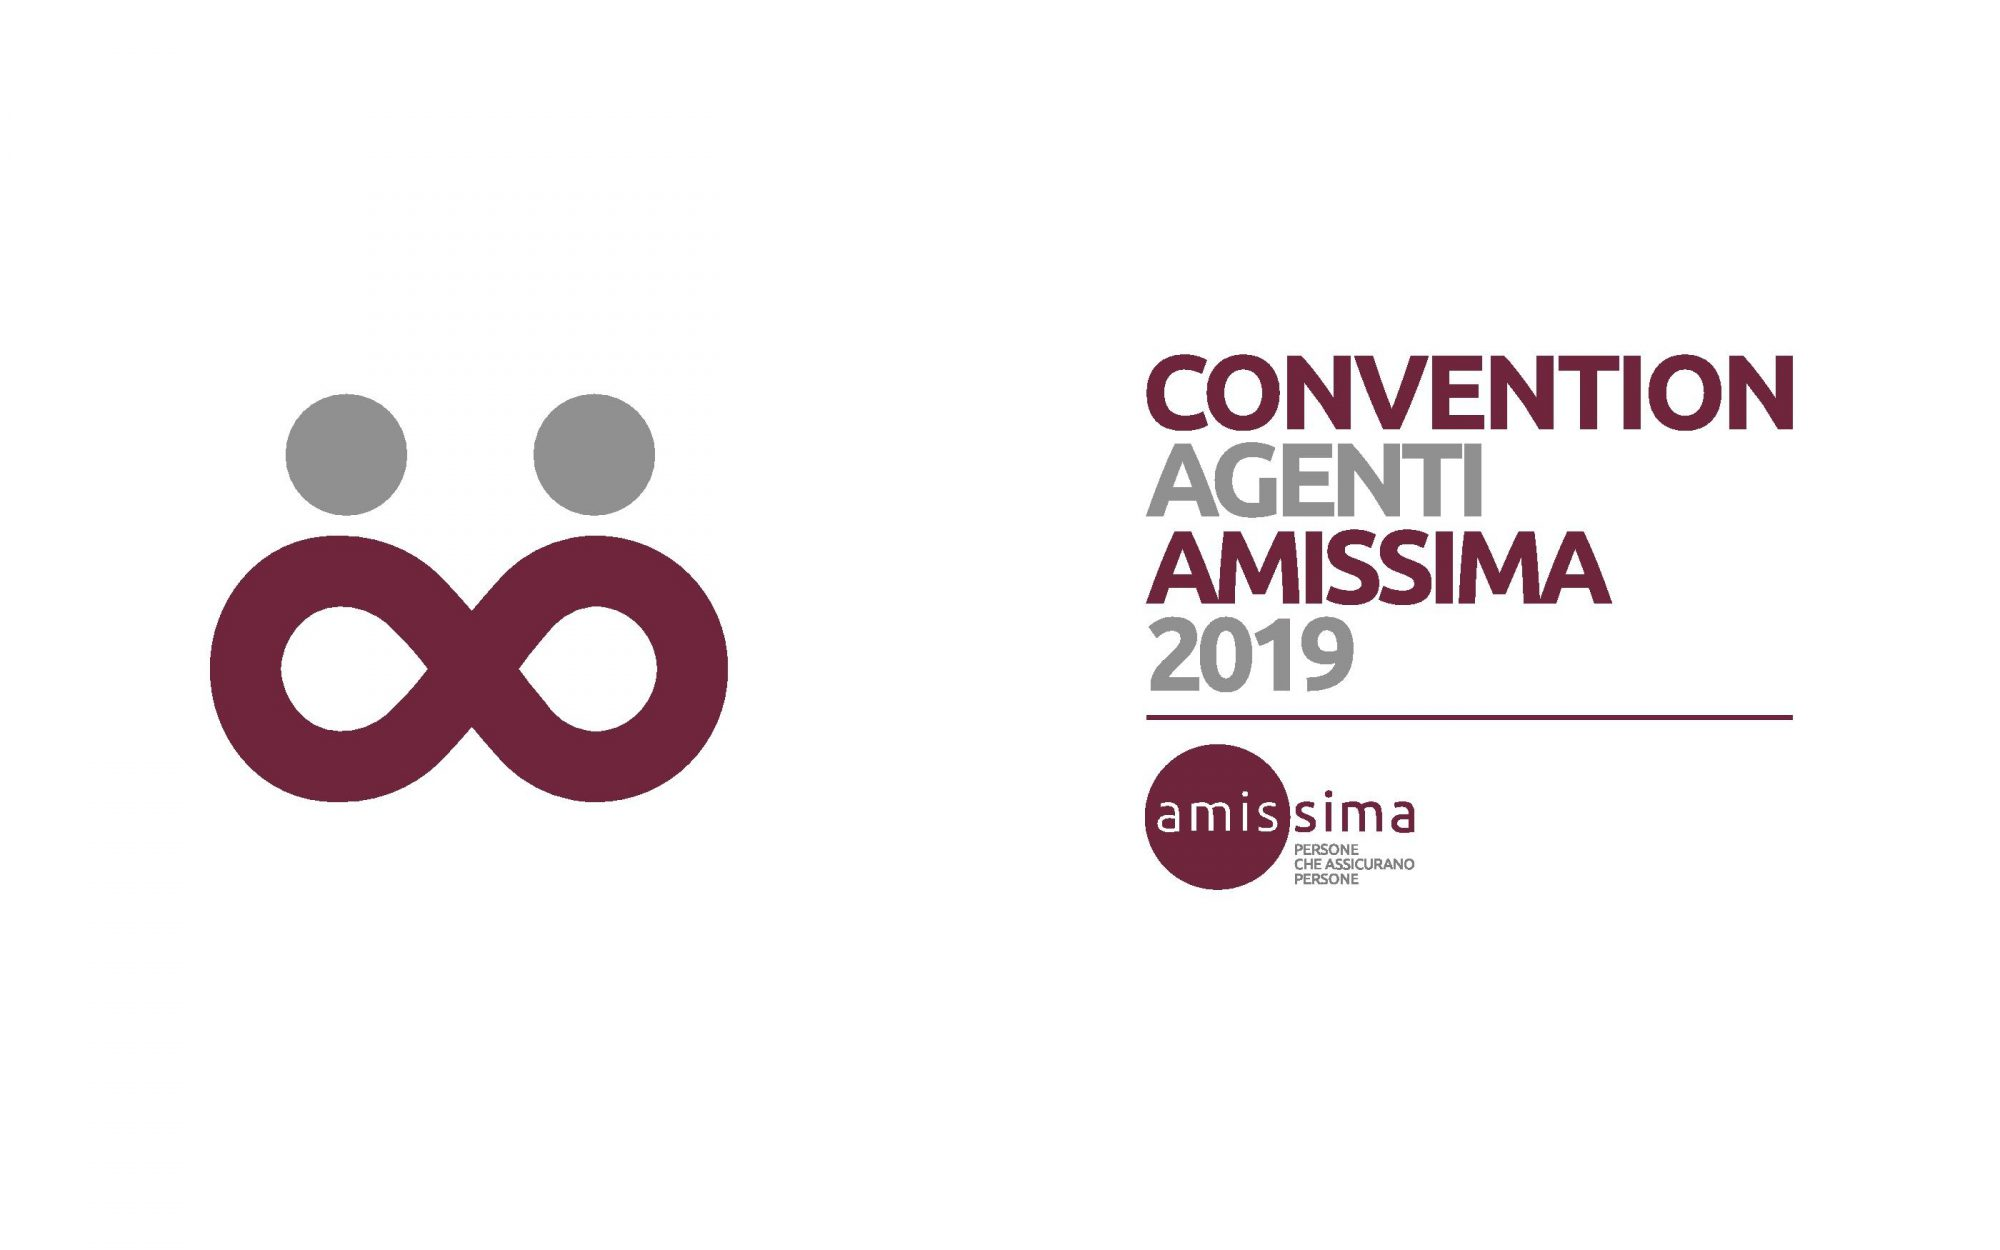 Amissima - Convention Agenti 2019